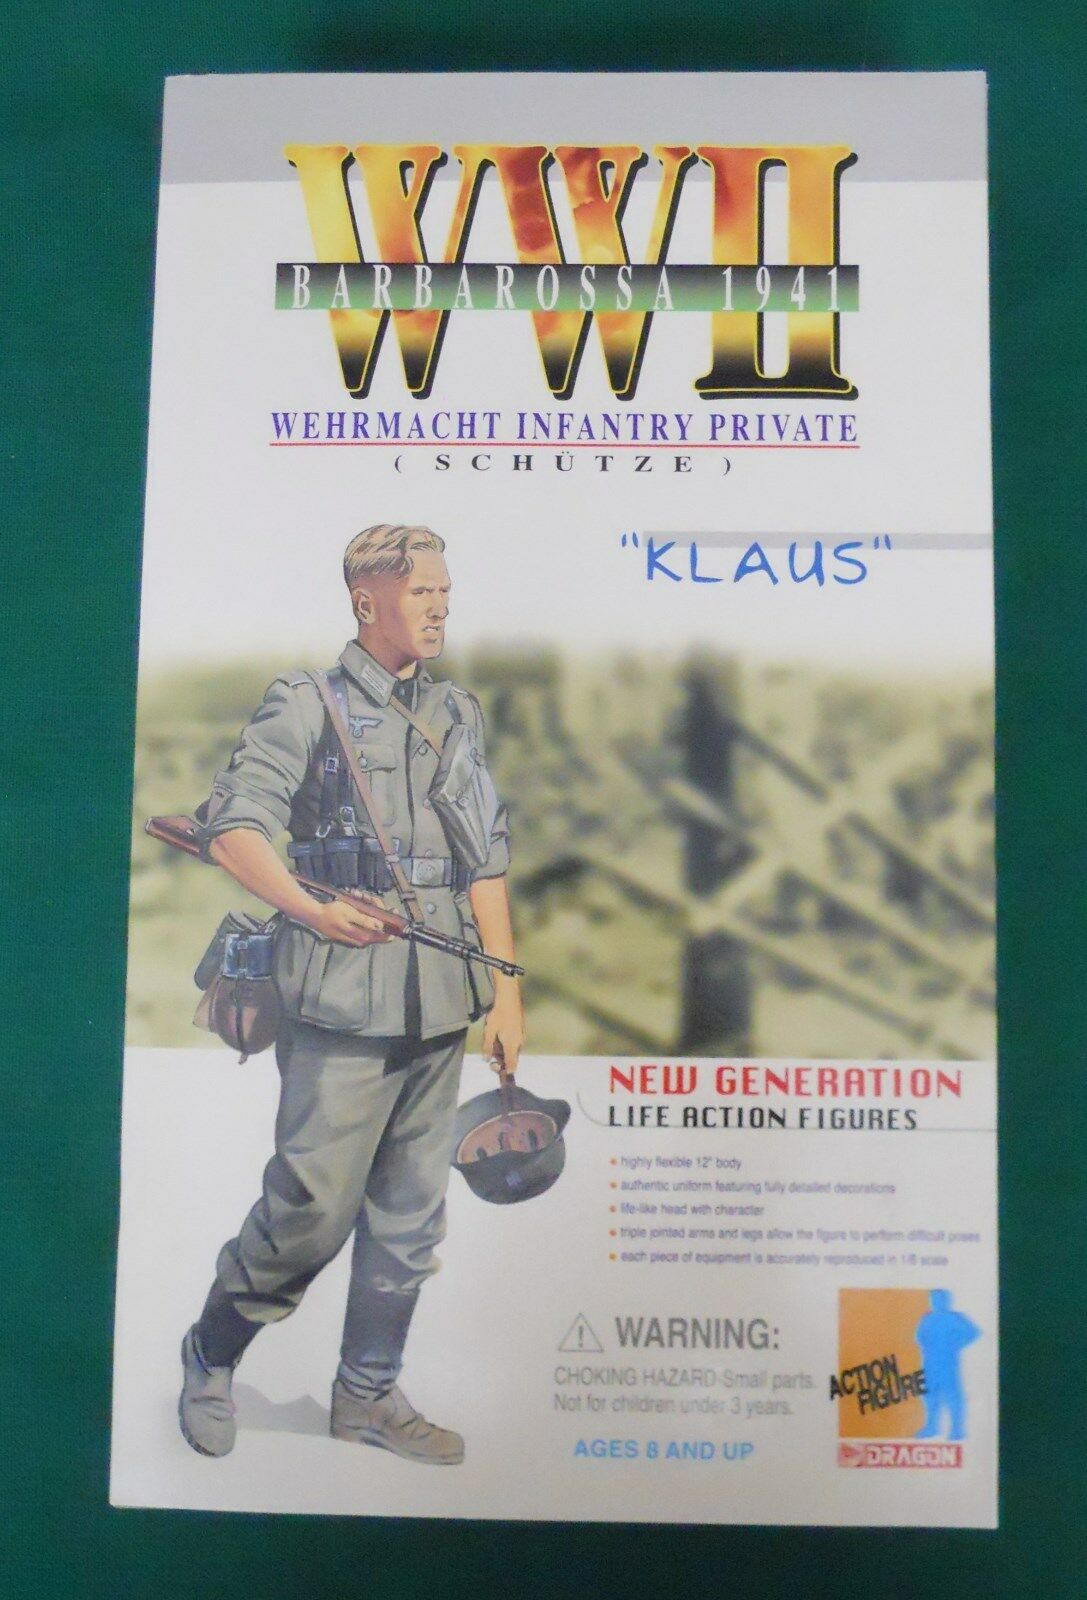 DRAGON 1 6 FIGURE WWII BARBAROSSA 1941 WEHRMACHT INFANTRY PRIVATE  KLAUS  NIB